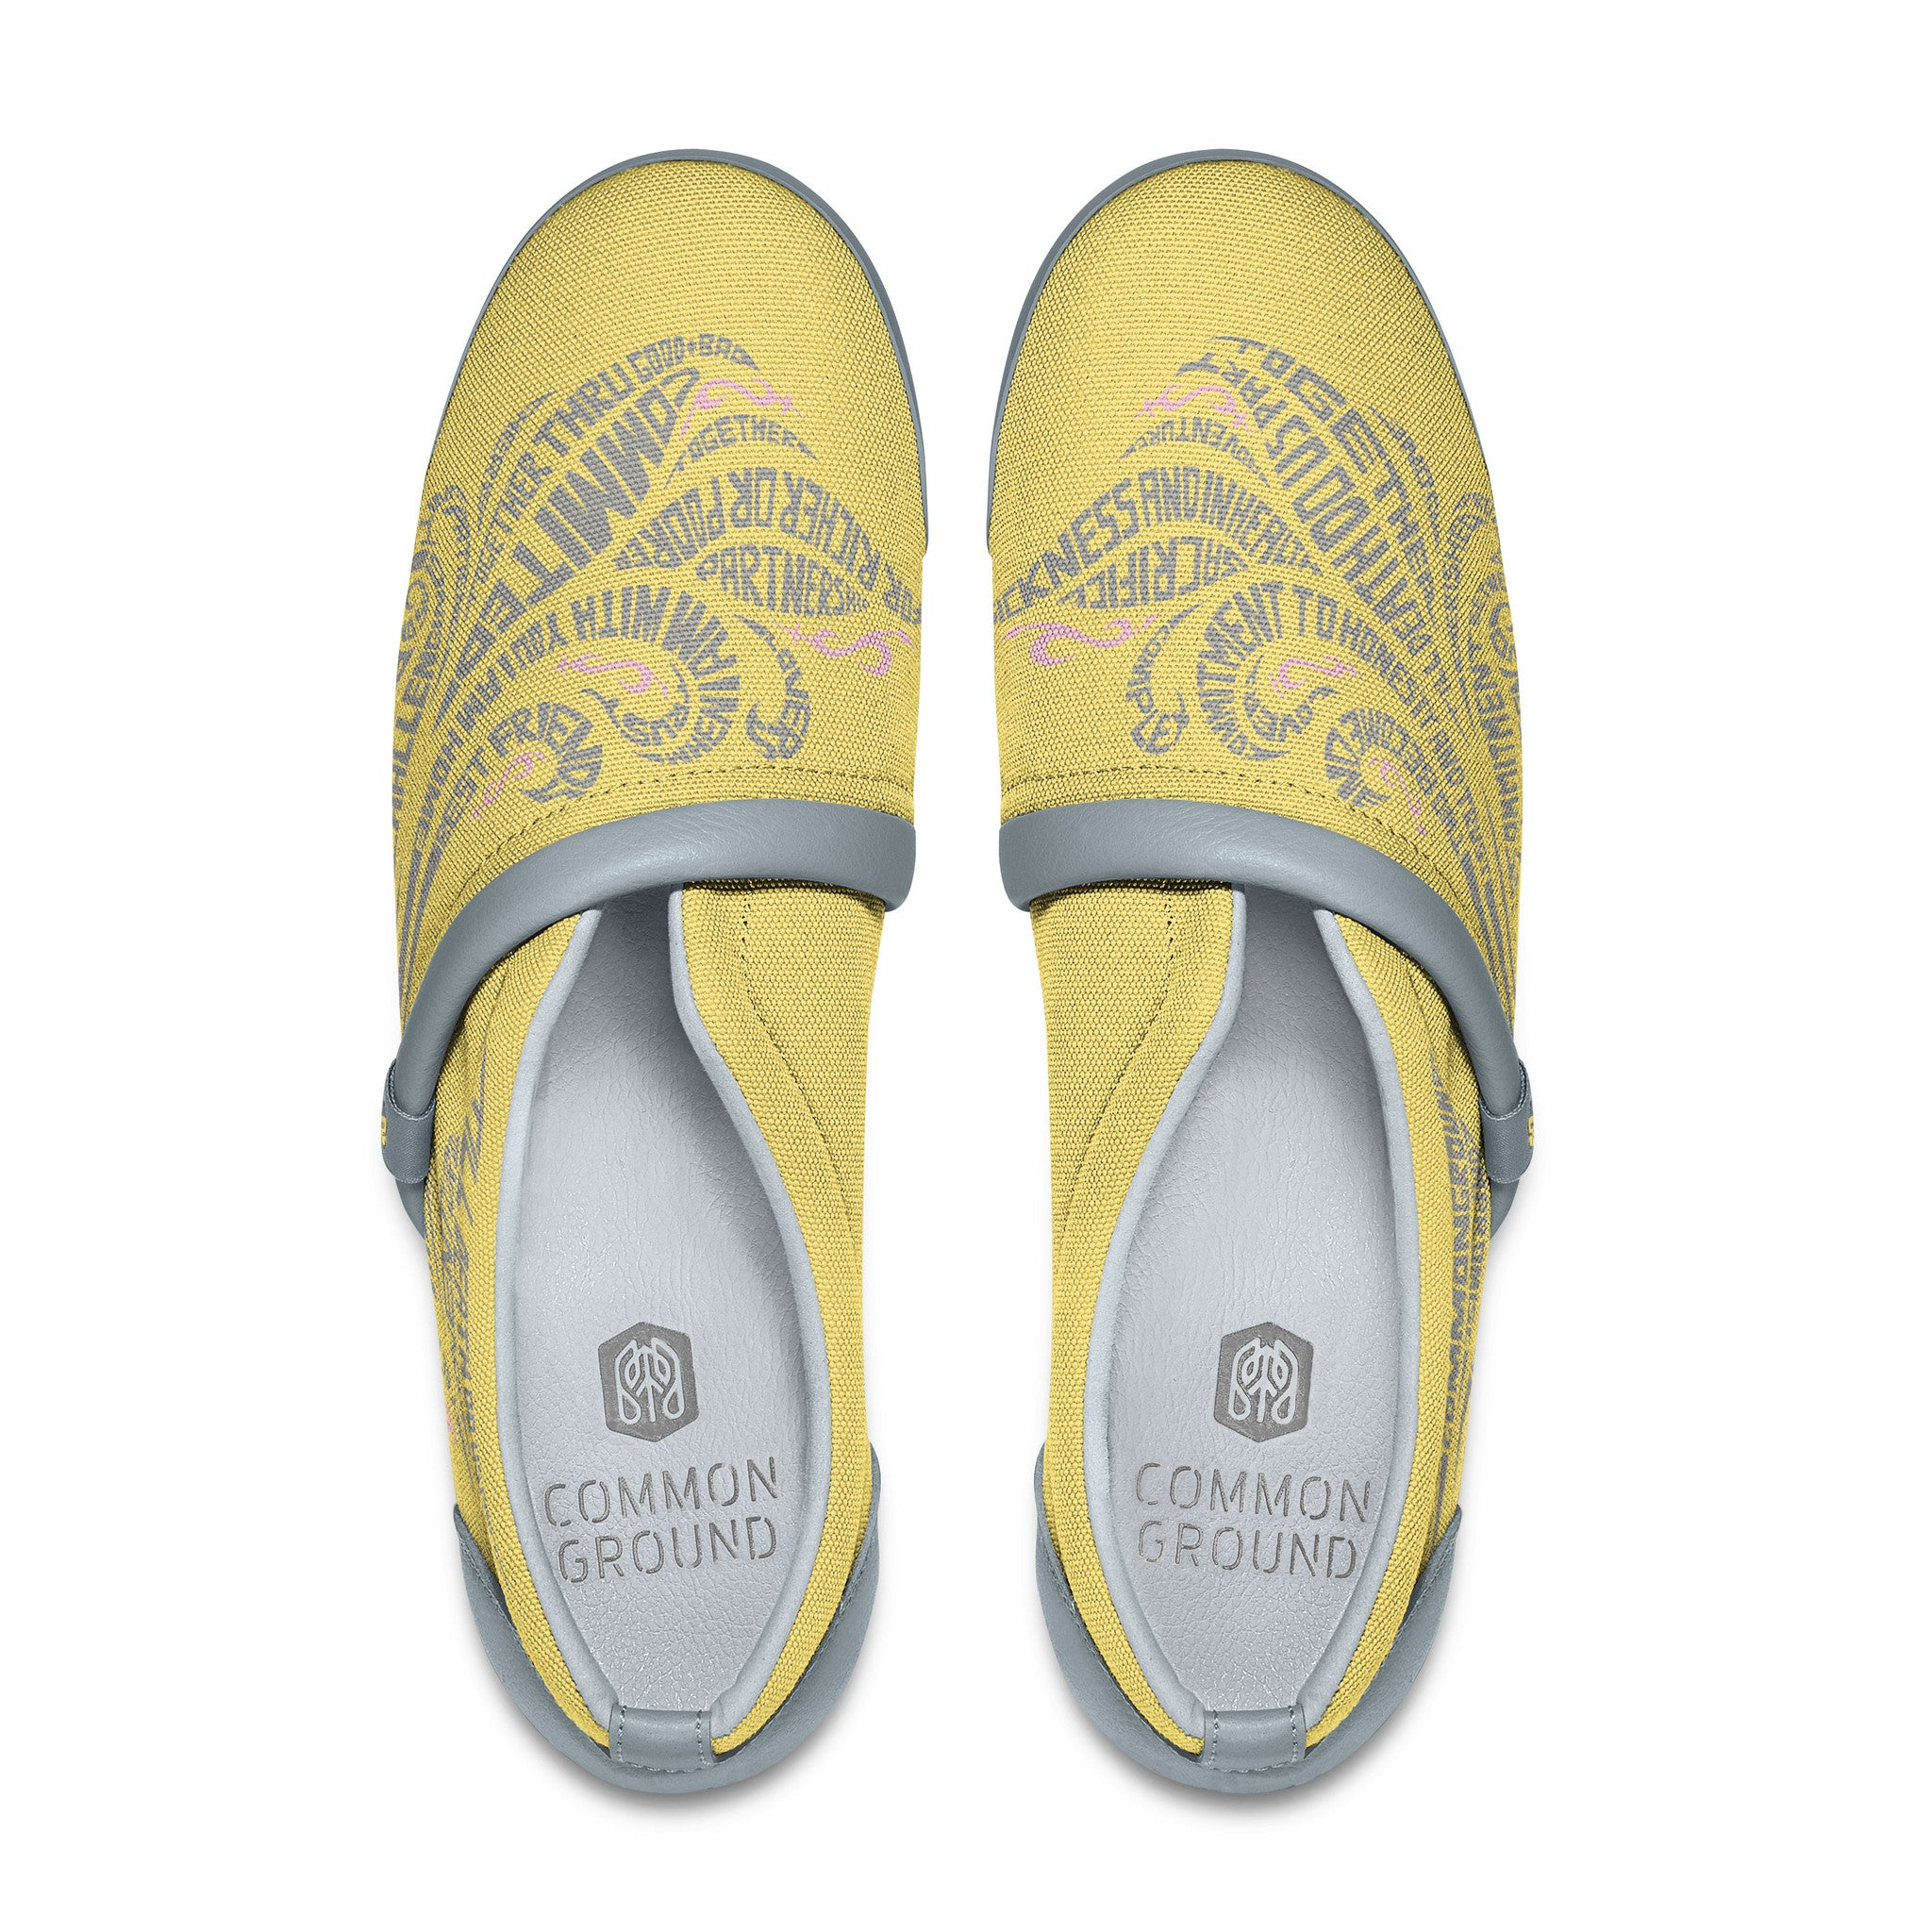 Goldfinch - Common Ground Footwear Shoes Top View